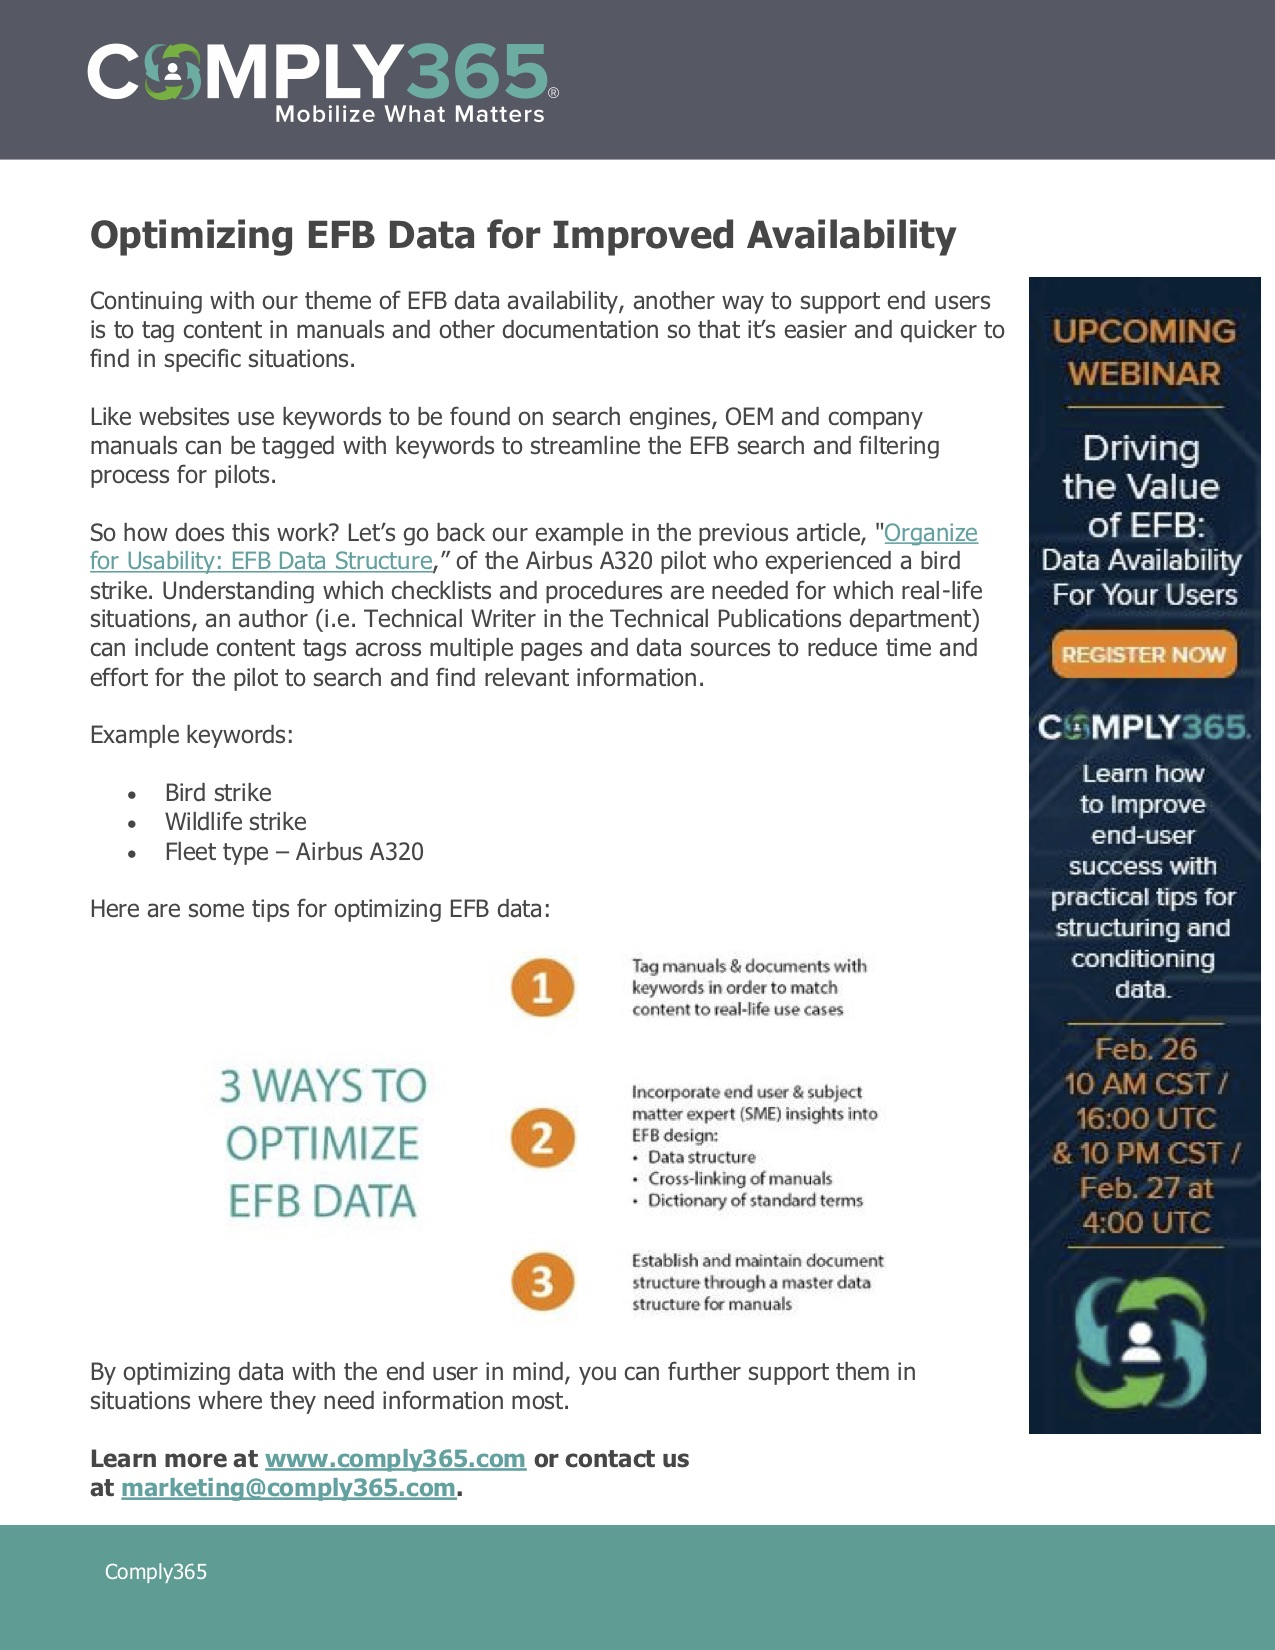 Optimizing EFB Data For Improved Availability